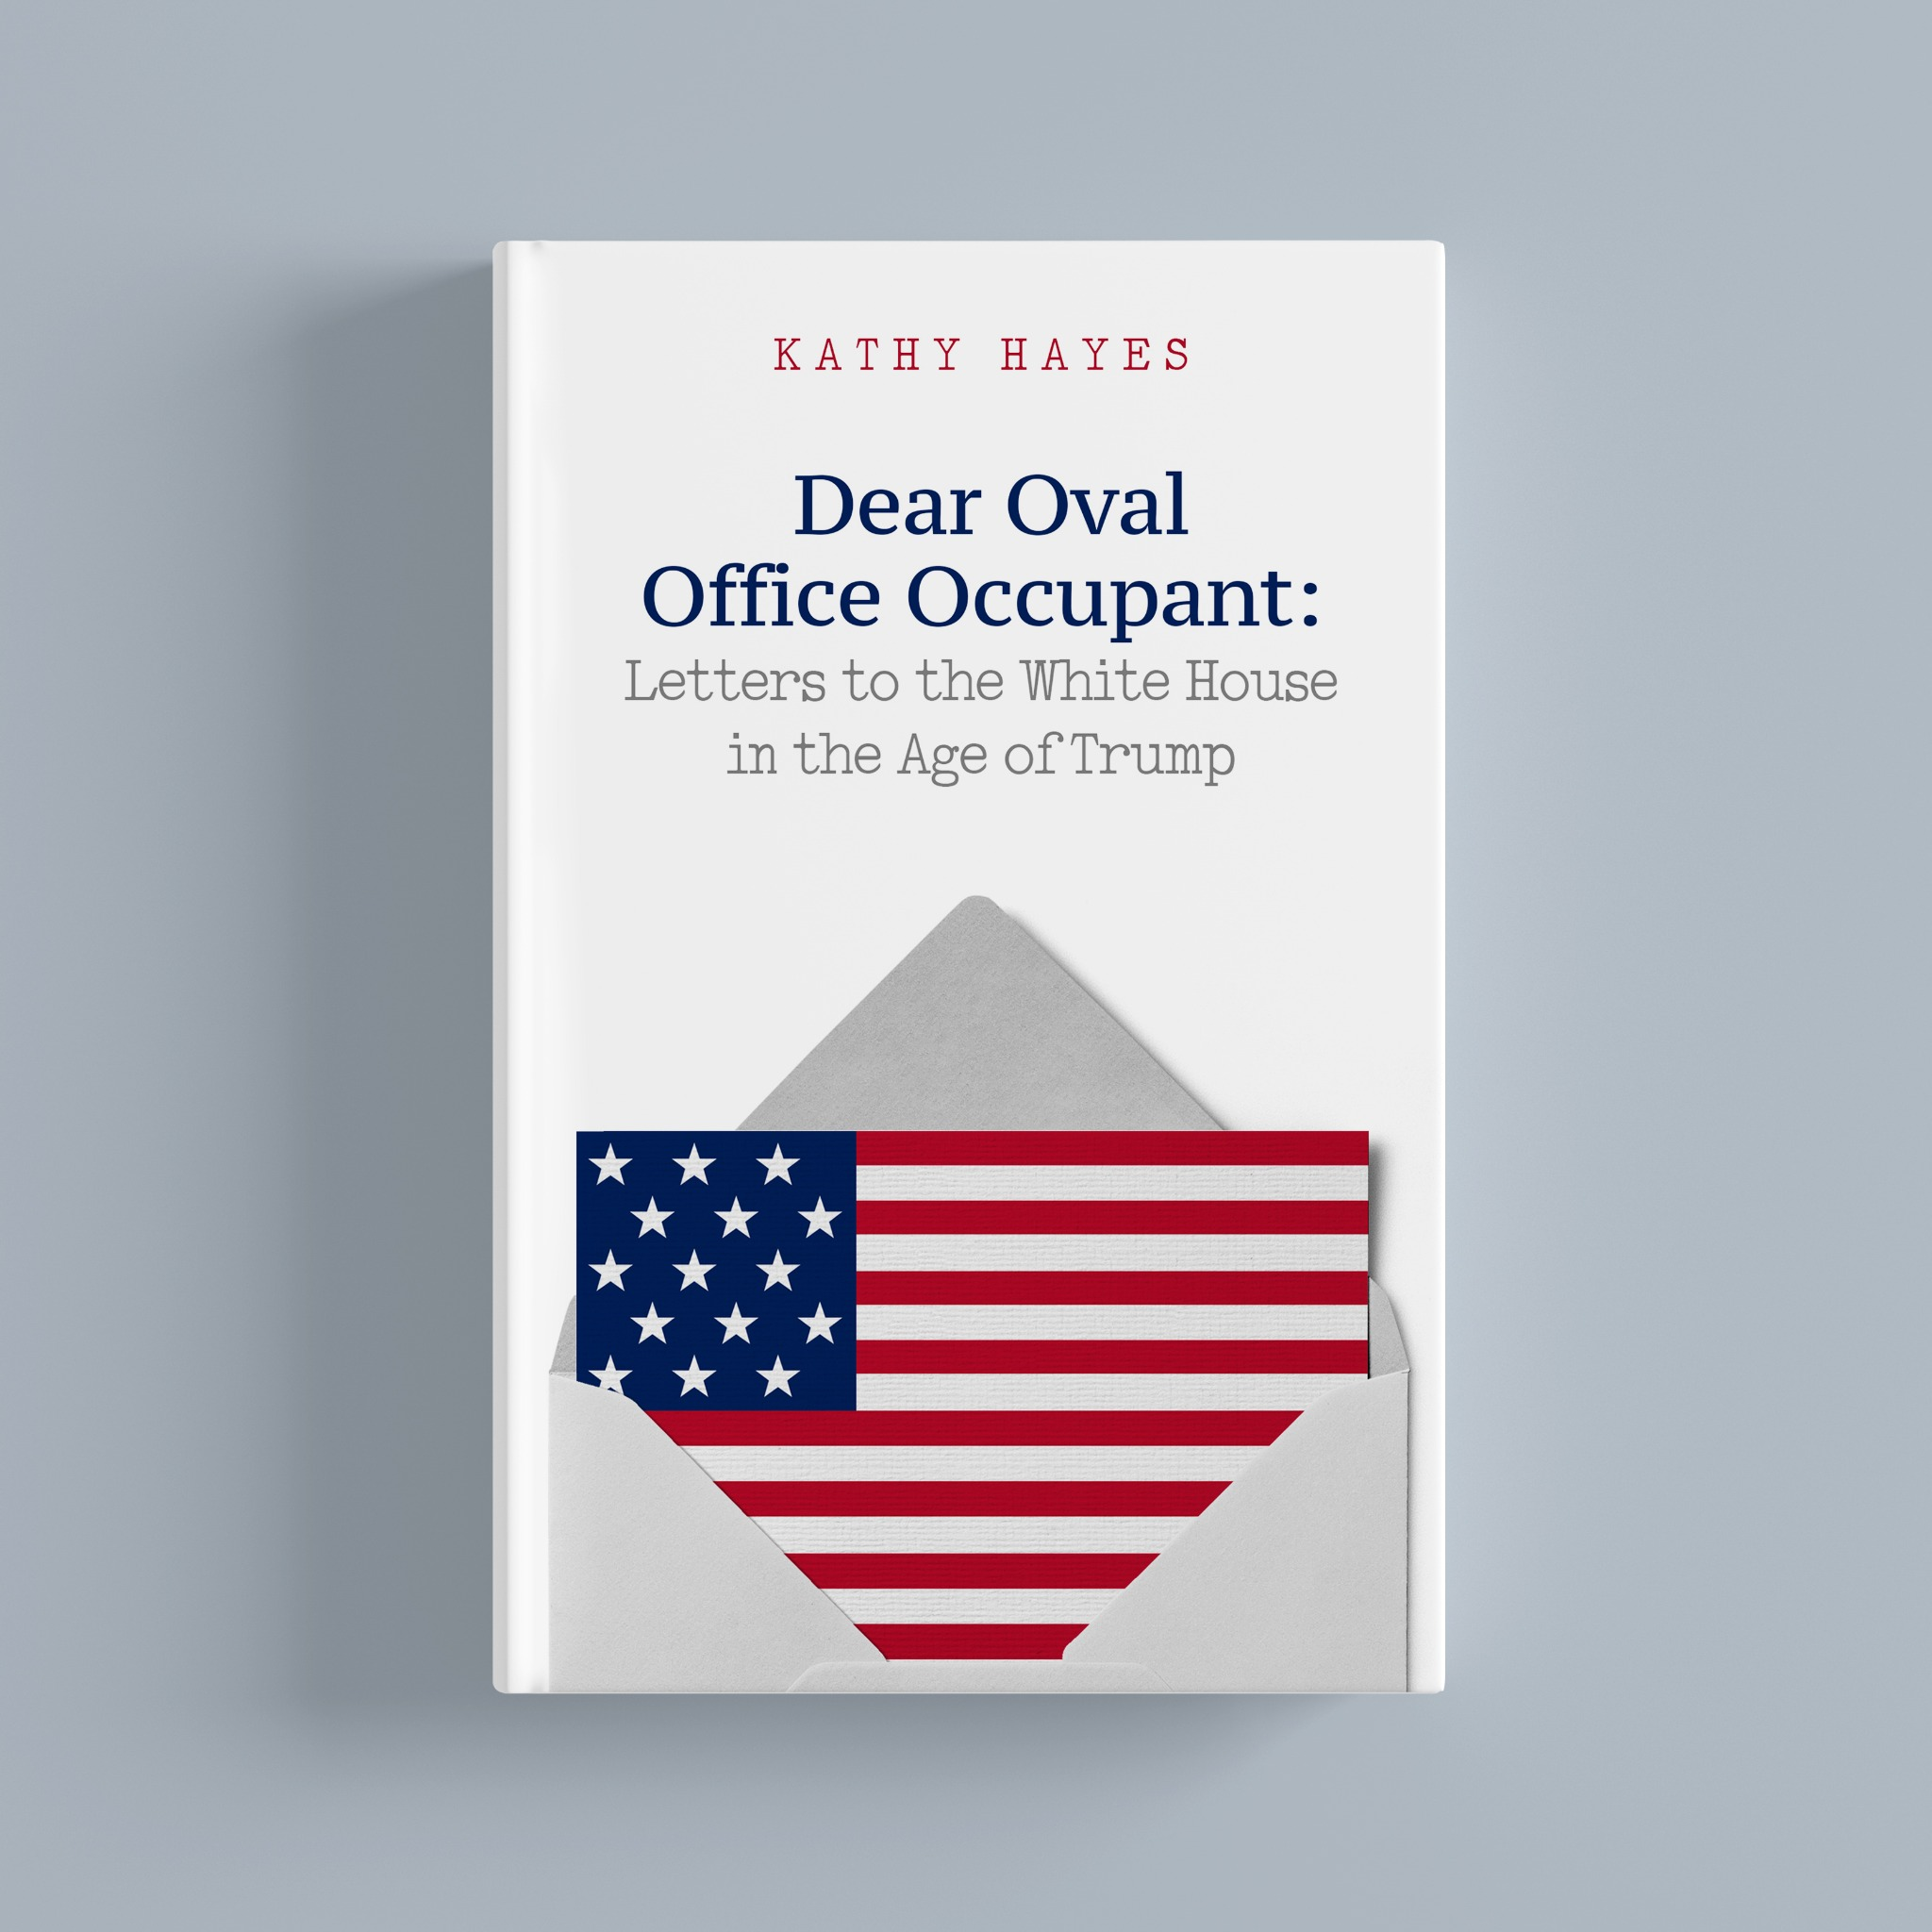 Dear Oval Office Occupant: Letters to the White House in the Age of Trump